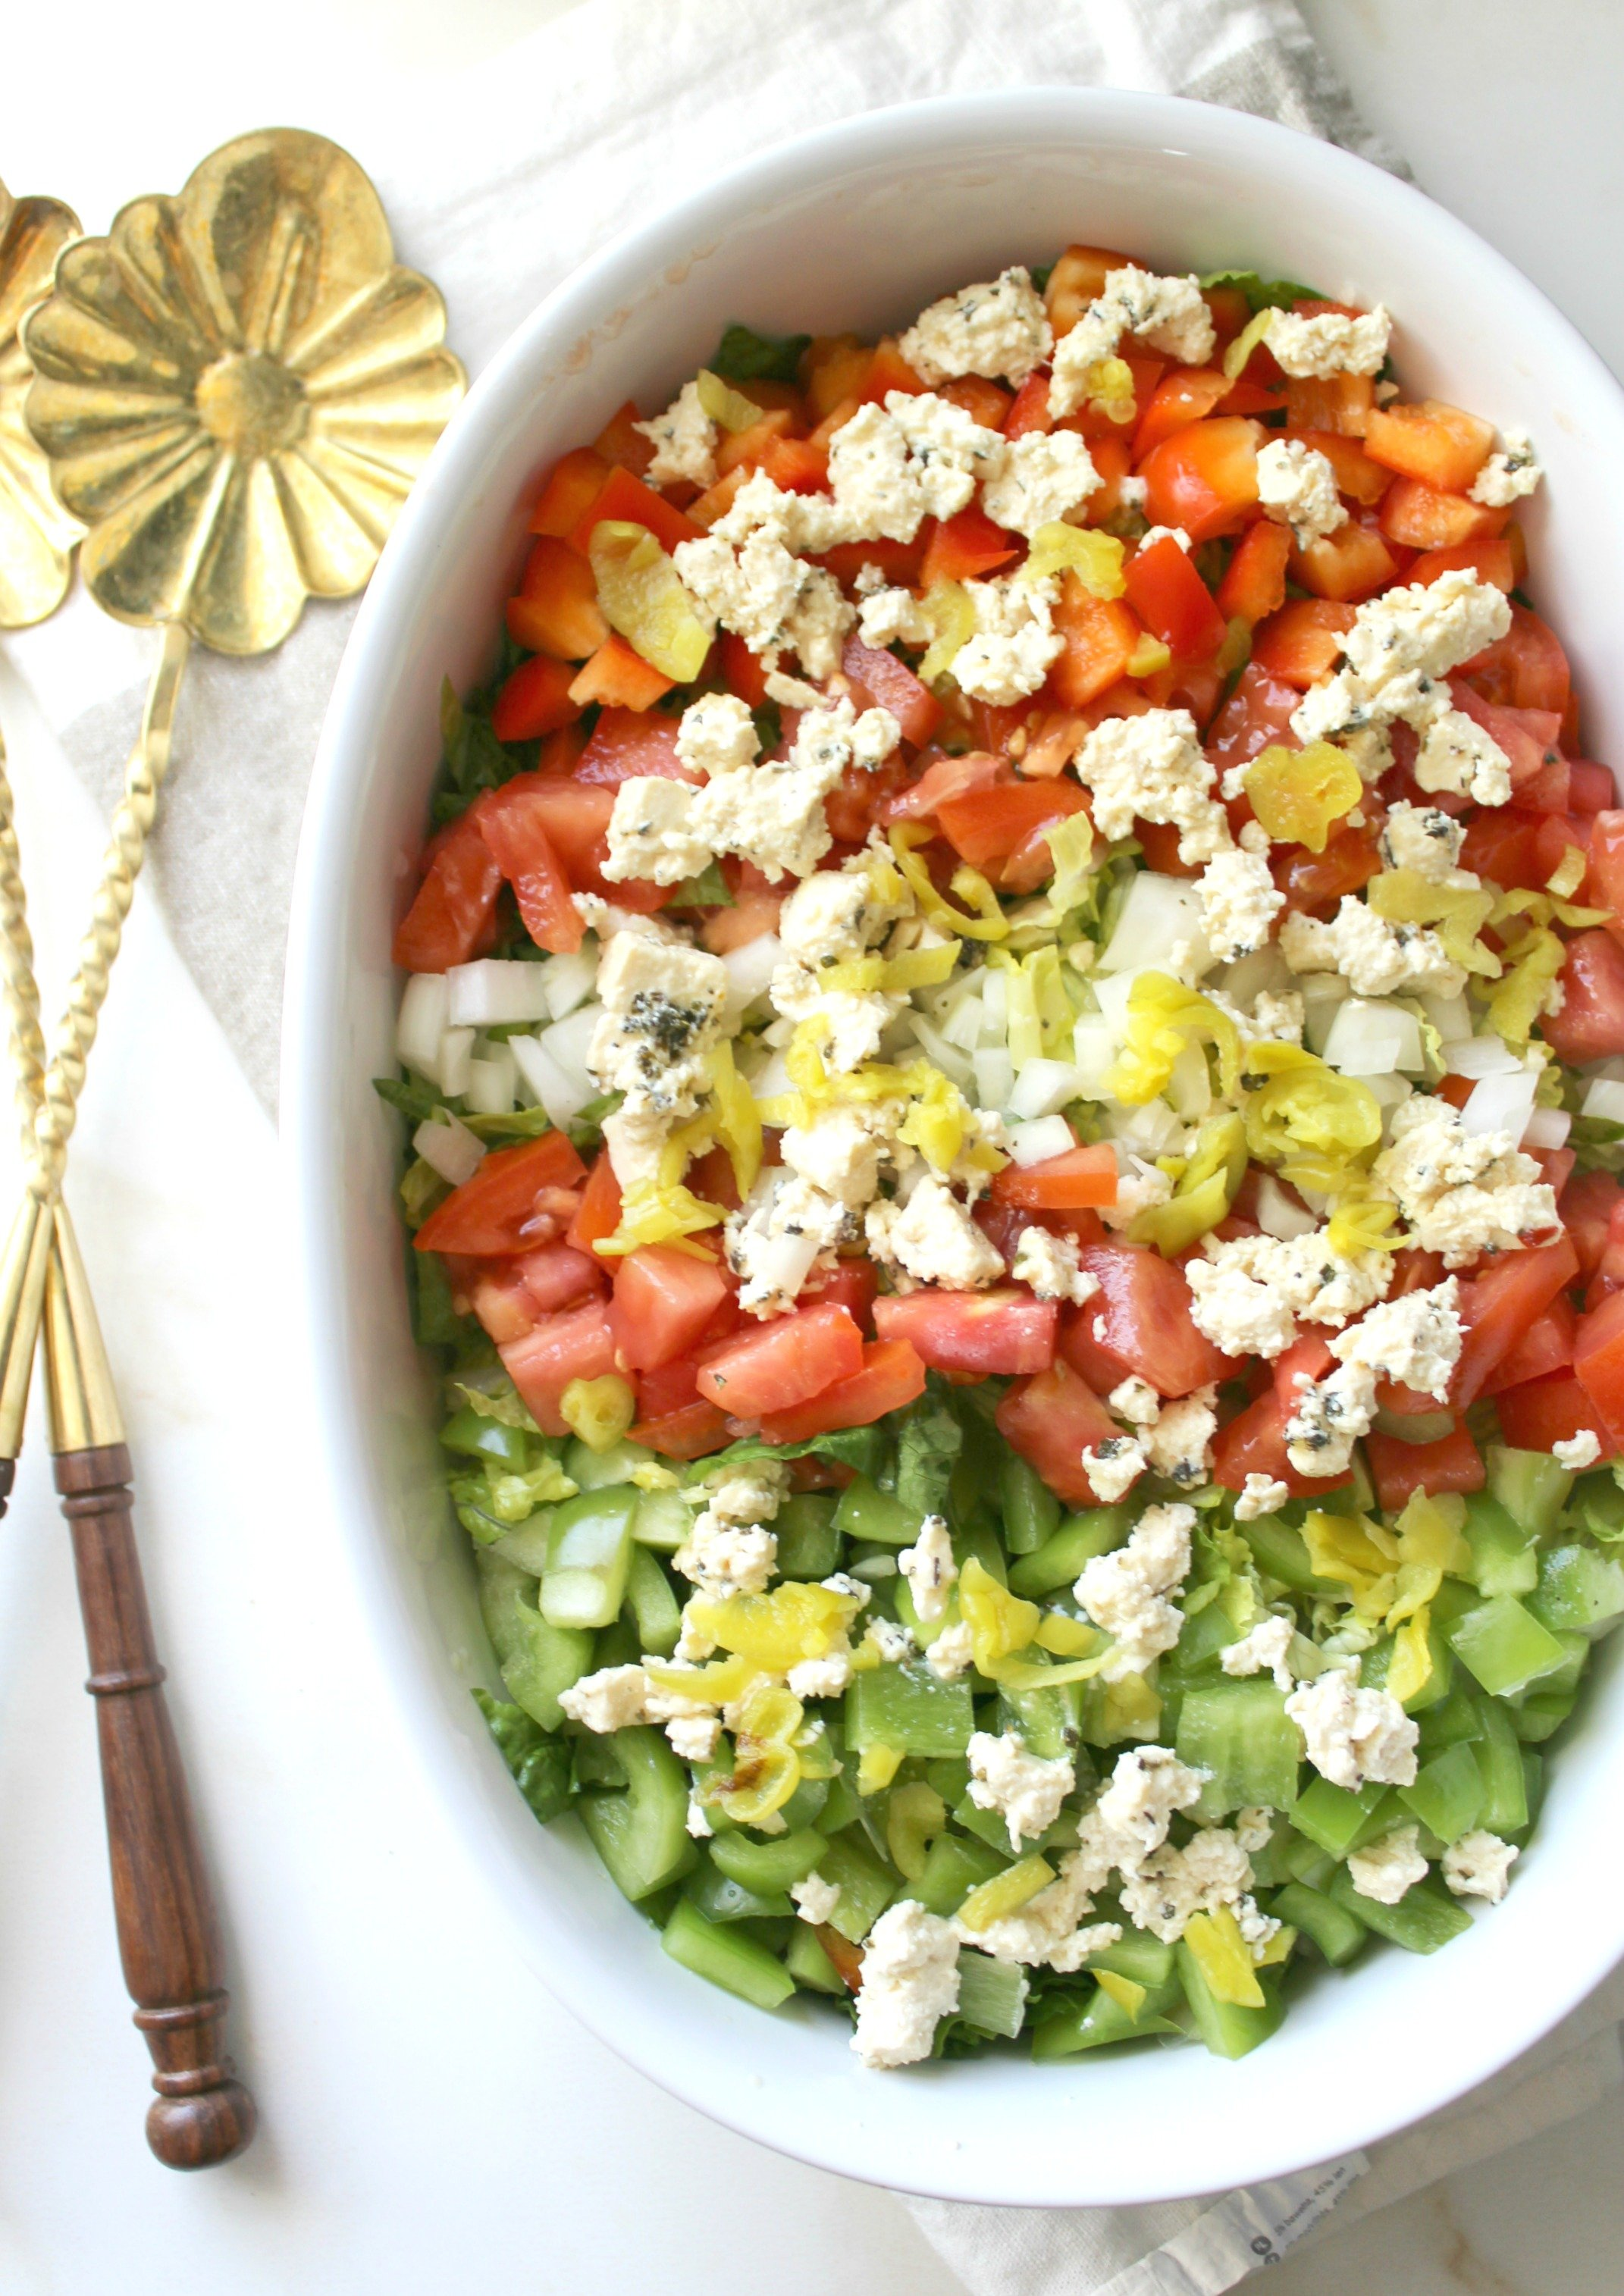 Chopped Salad with Tofu Feta - This Savory Vegan